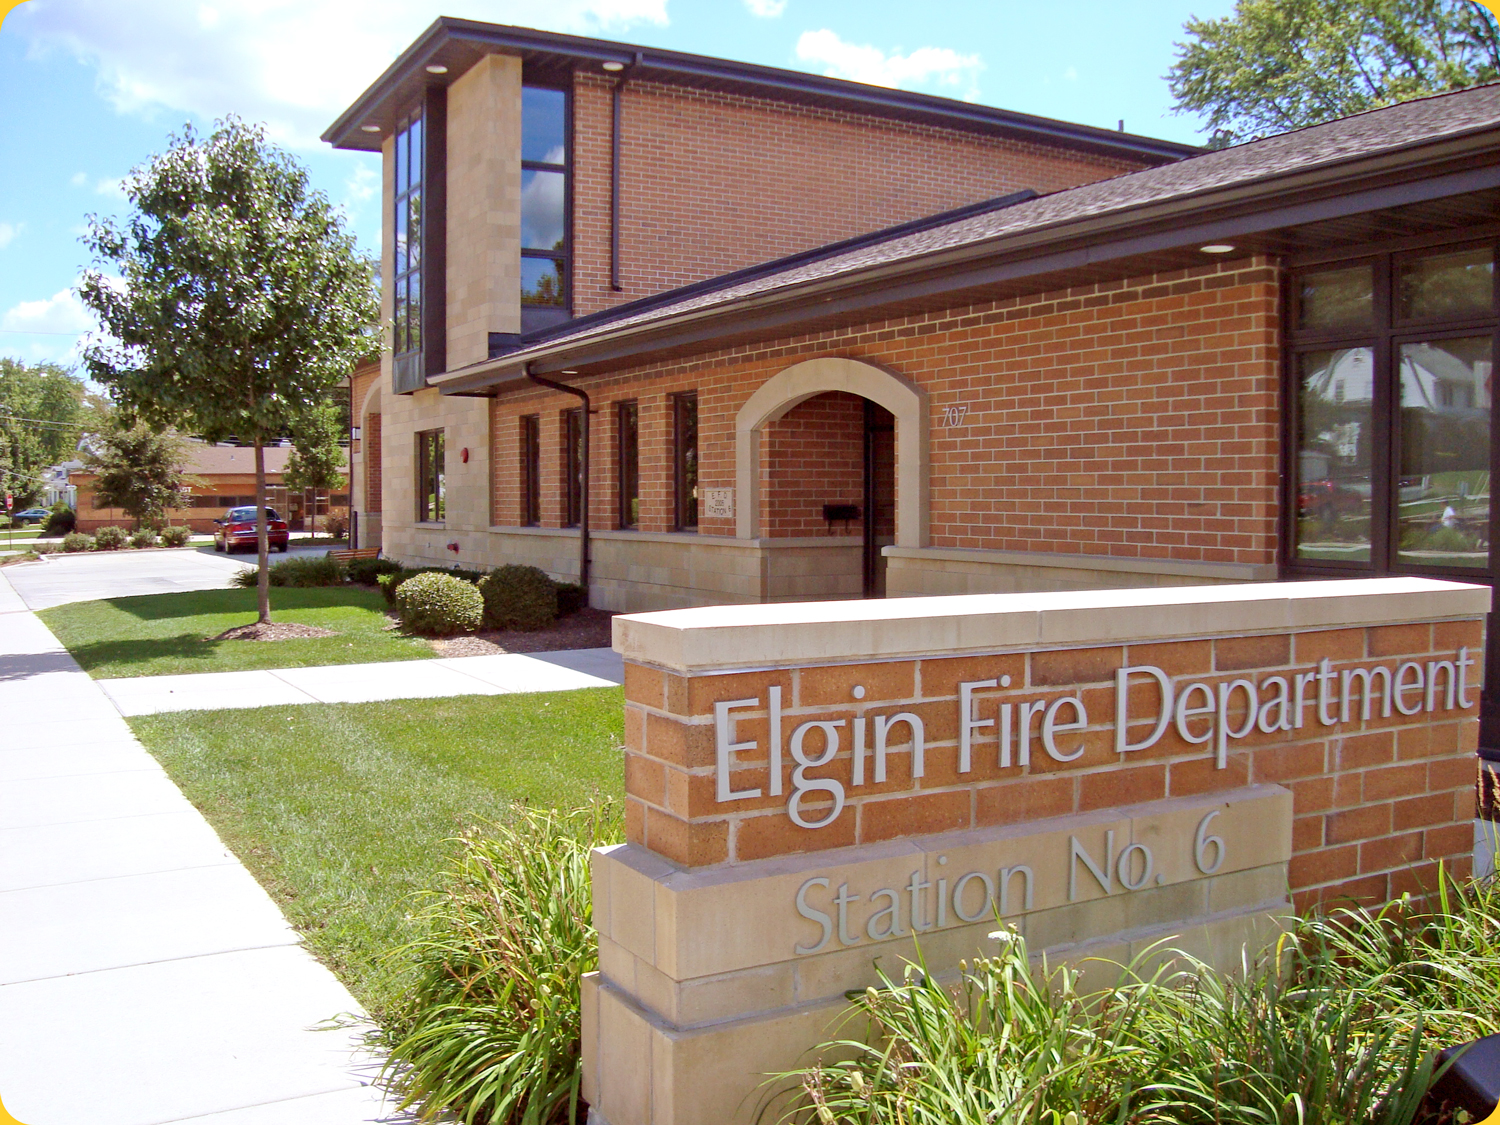 Elgin Fire Department Station No 6